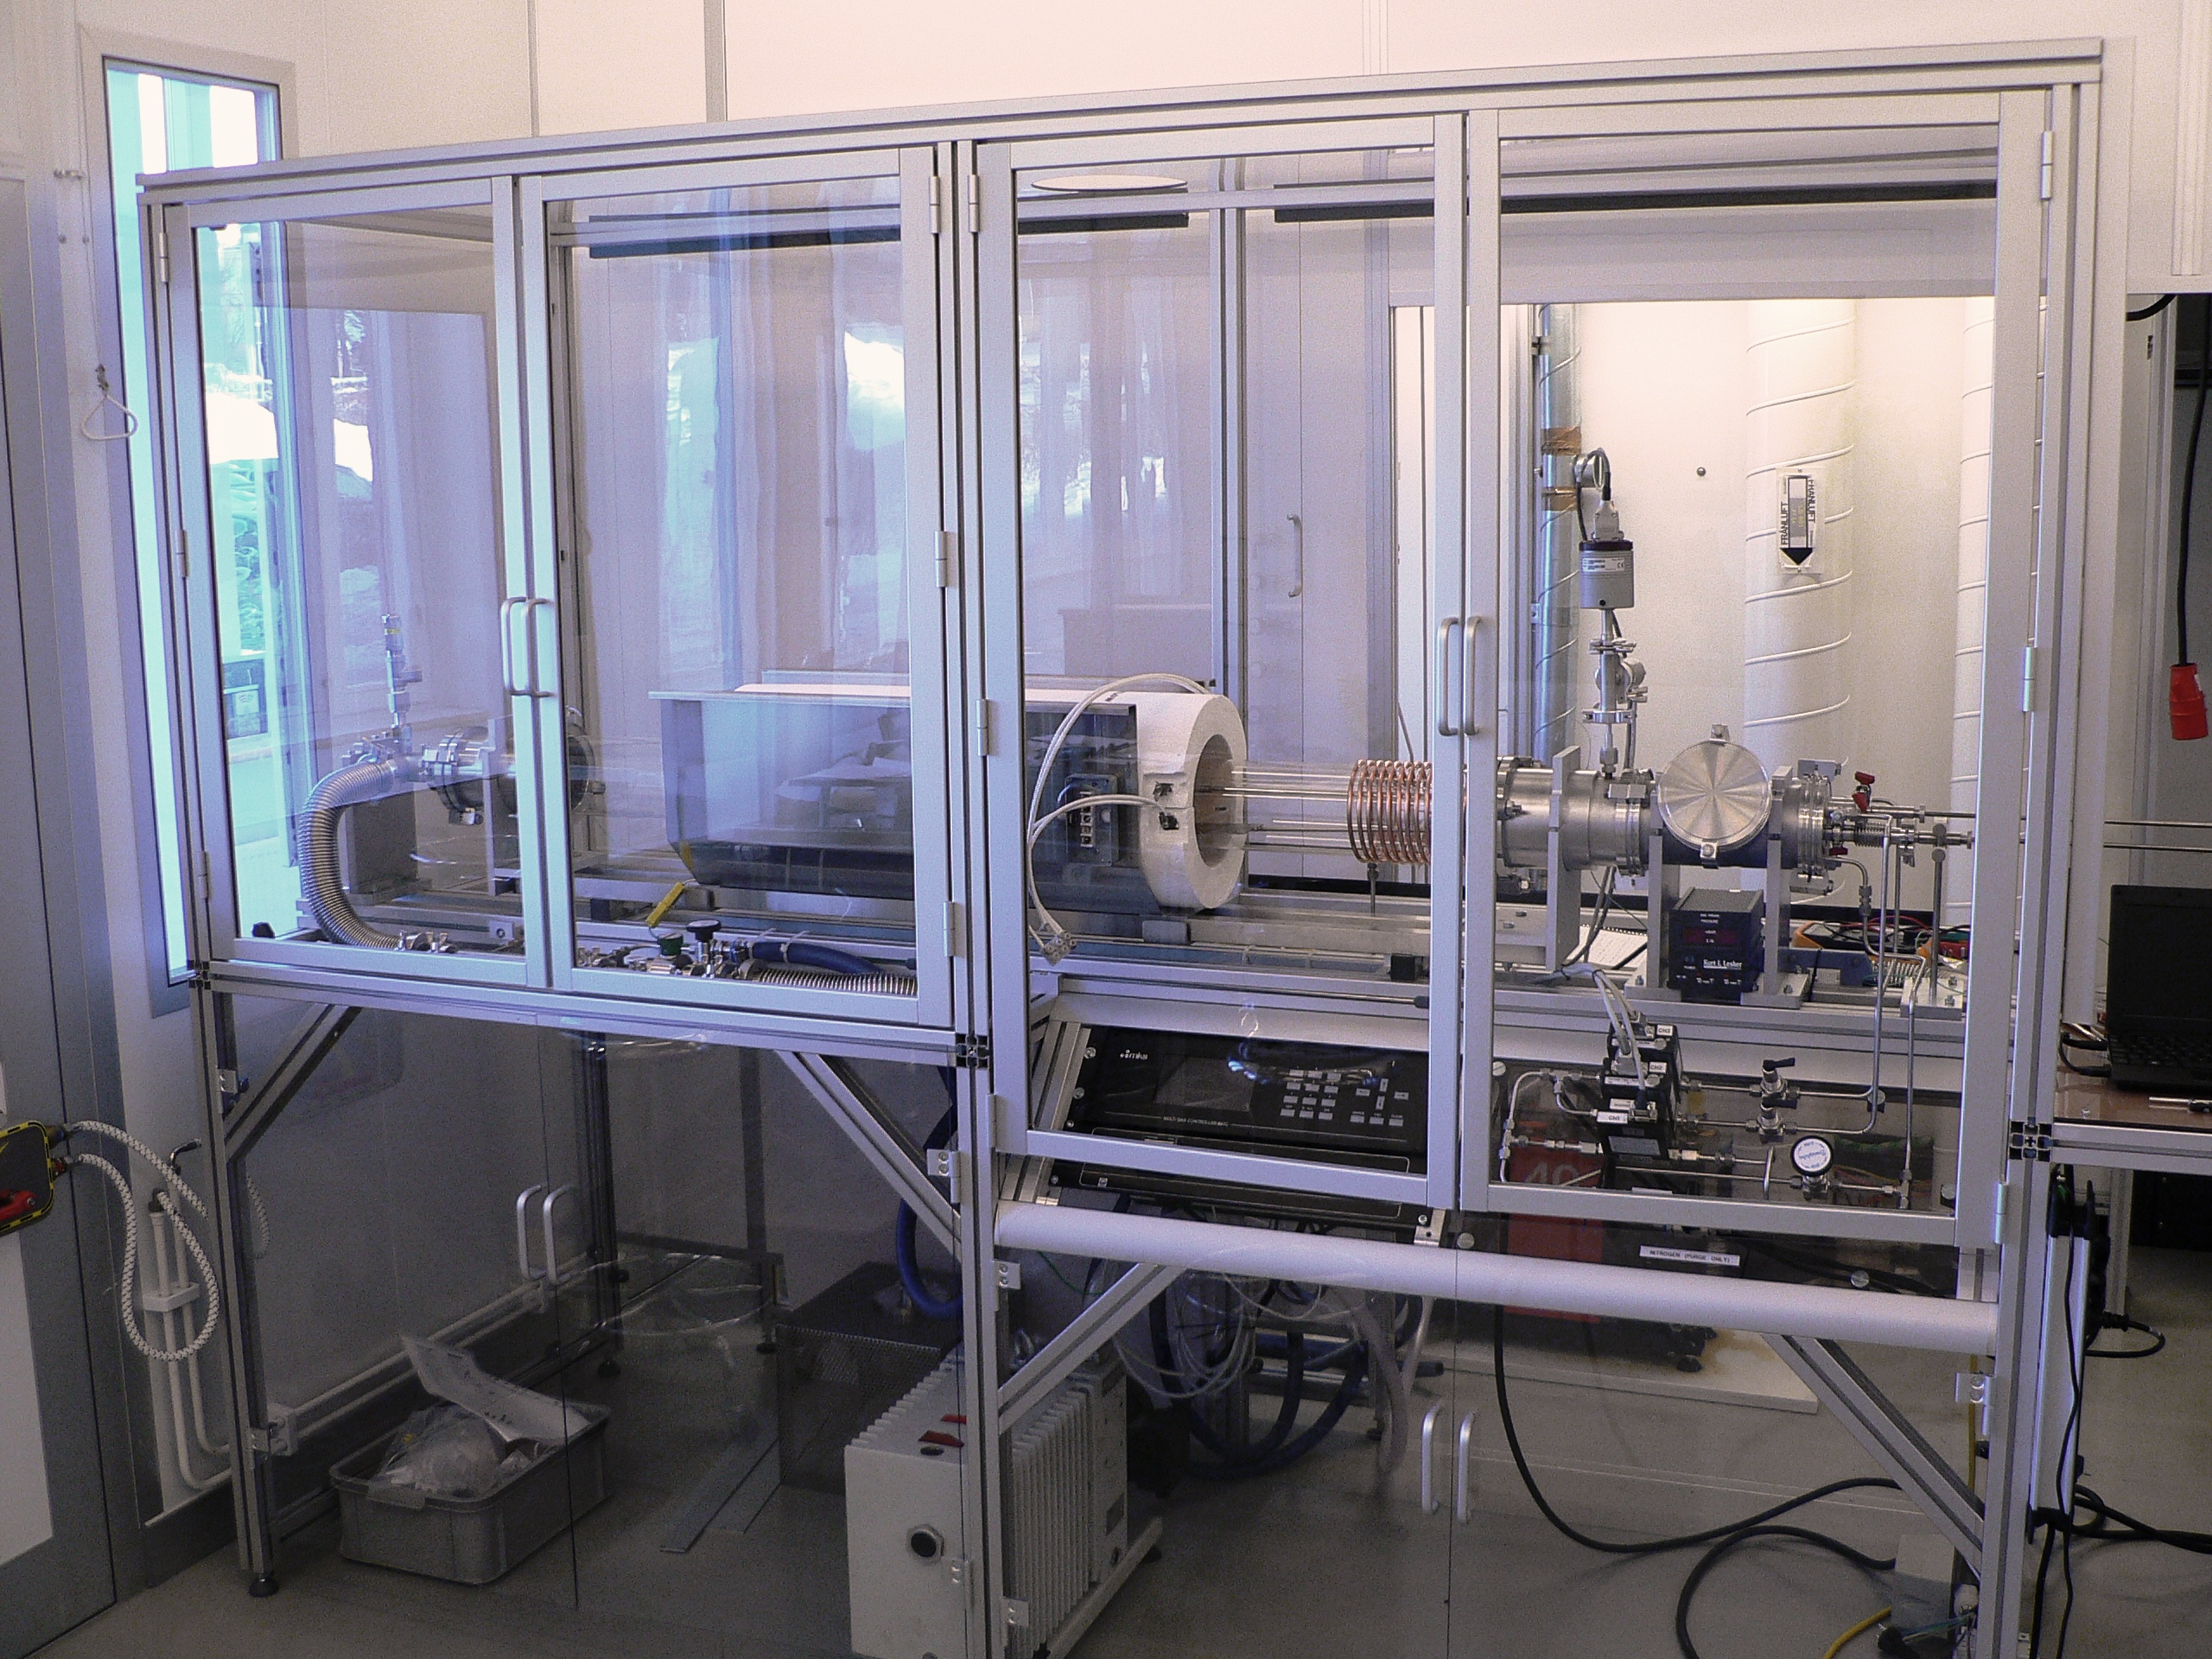 Picture of Sulfoselenisation Furnace (SuSe)